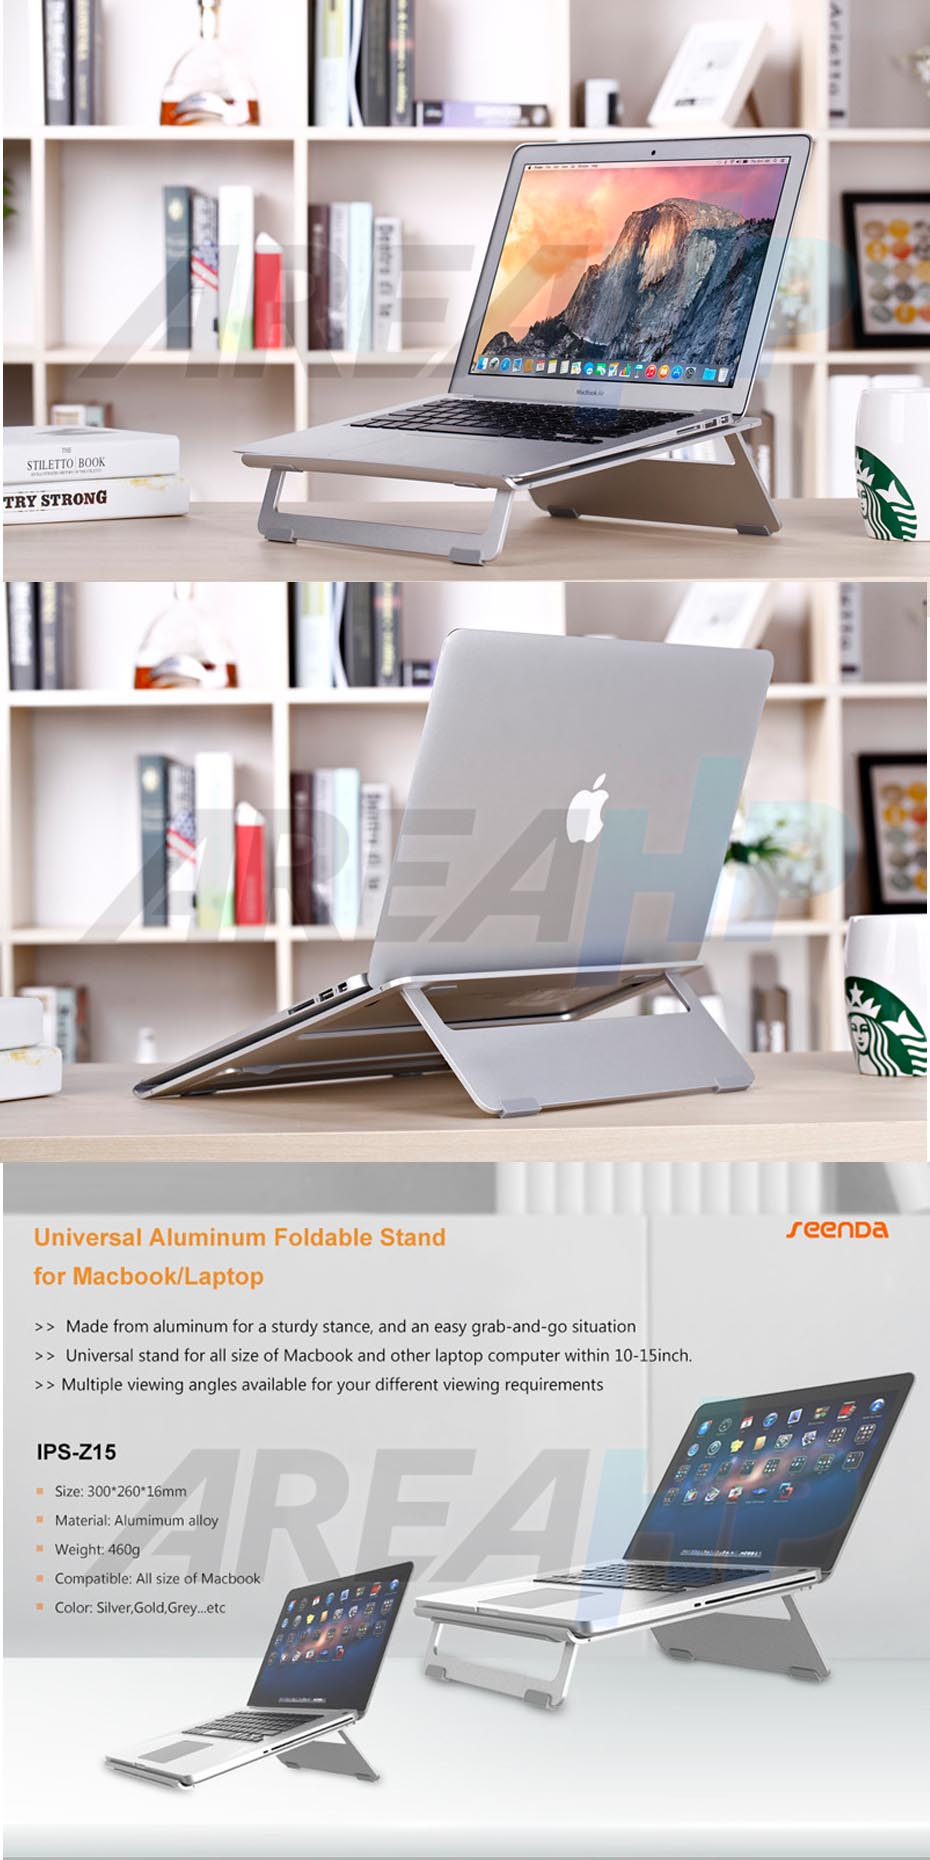 Seenda Alumunium Foldable Stand for Laptop, Macbook 11-15 Inch IPS-Z15 Overview